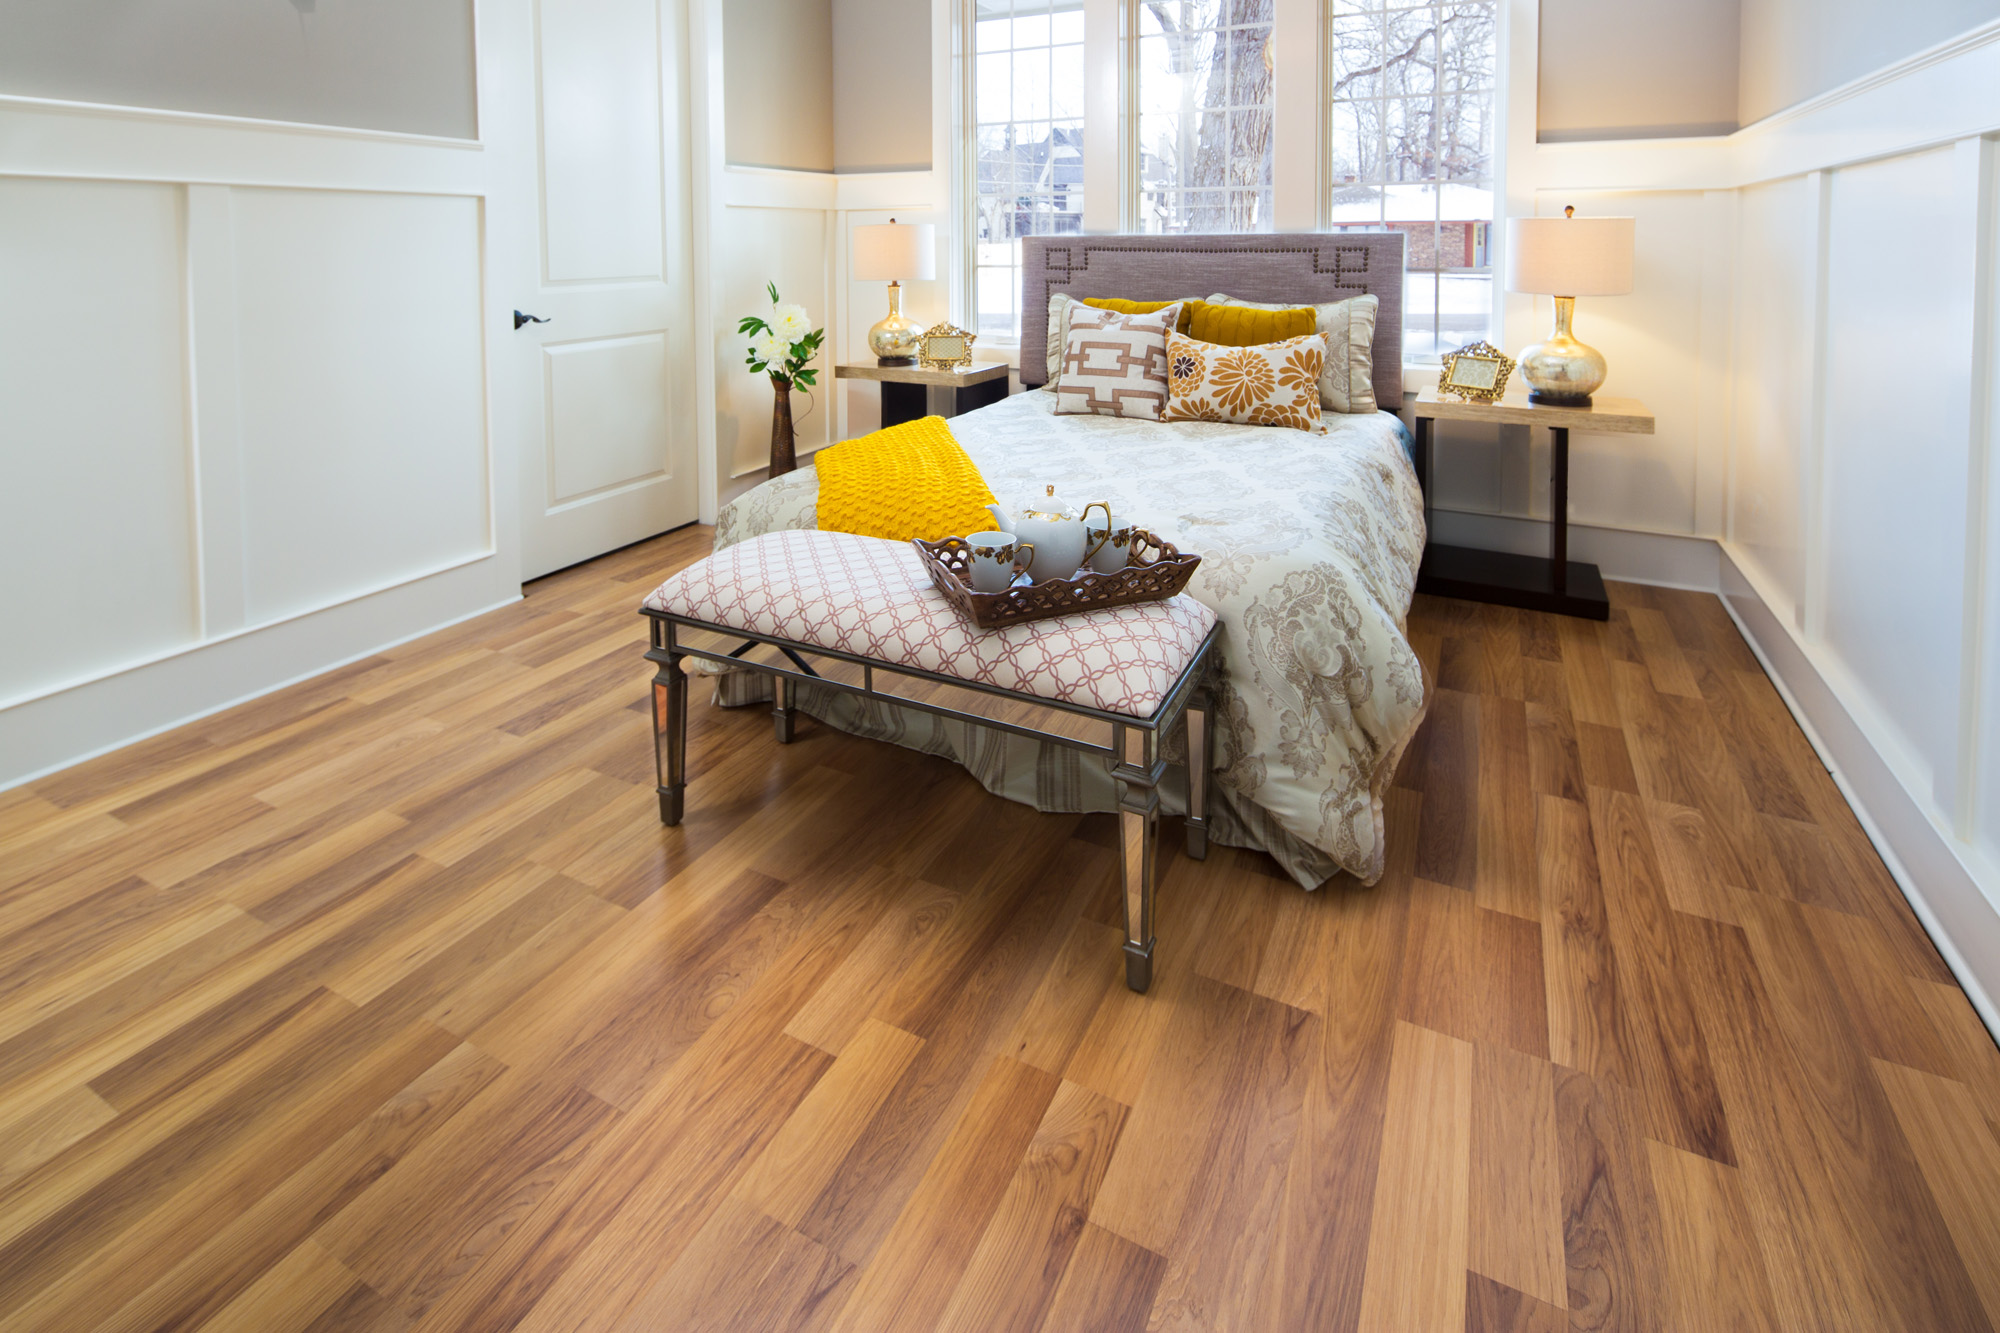 The advantage of laminate flooring which will blow your mind.